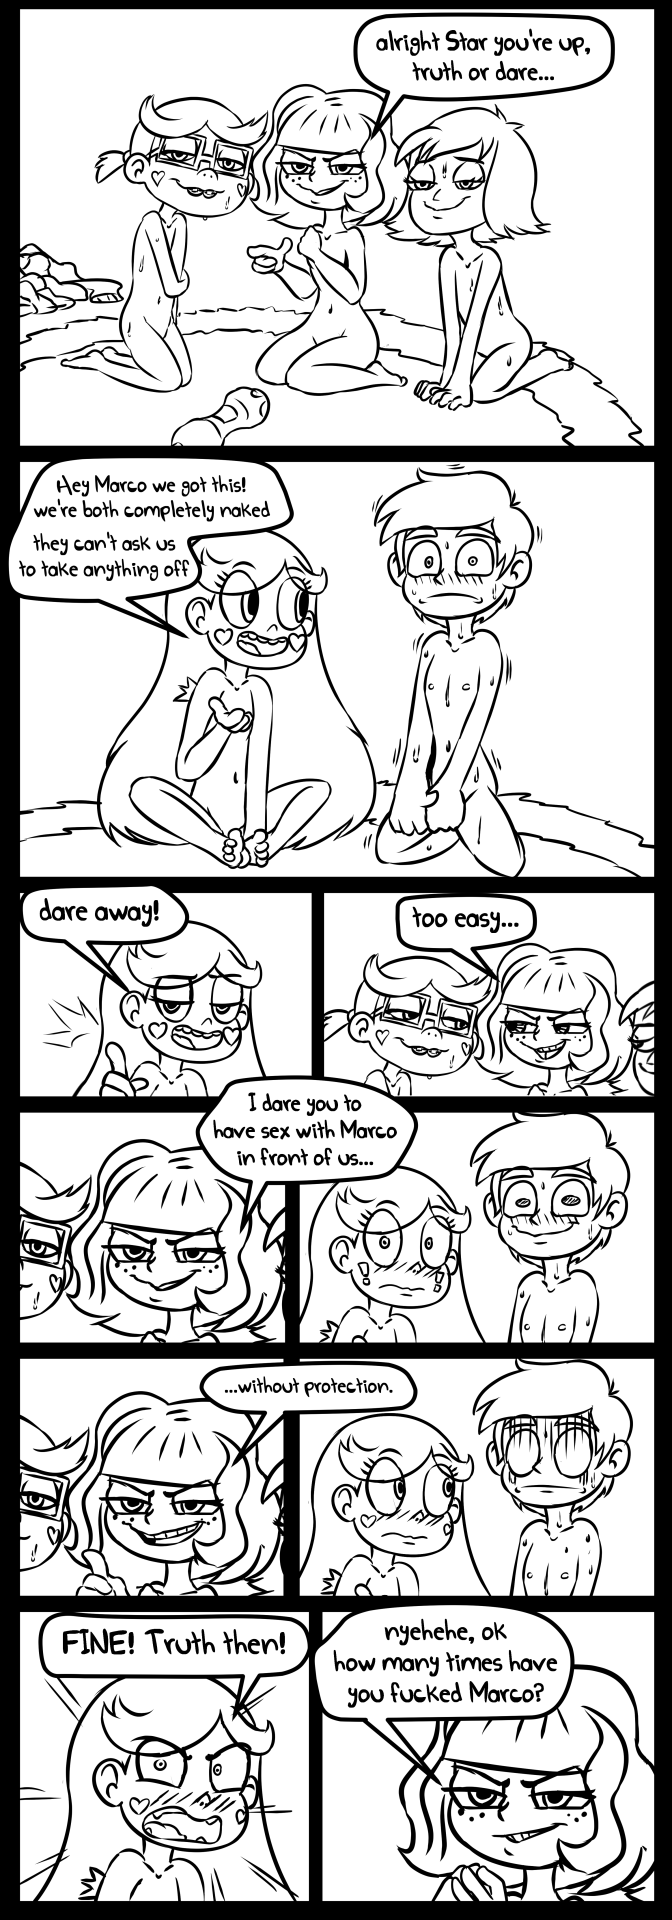 vs the star forces starco of evil comic Clifford the big red dog porn